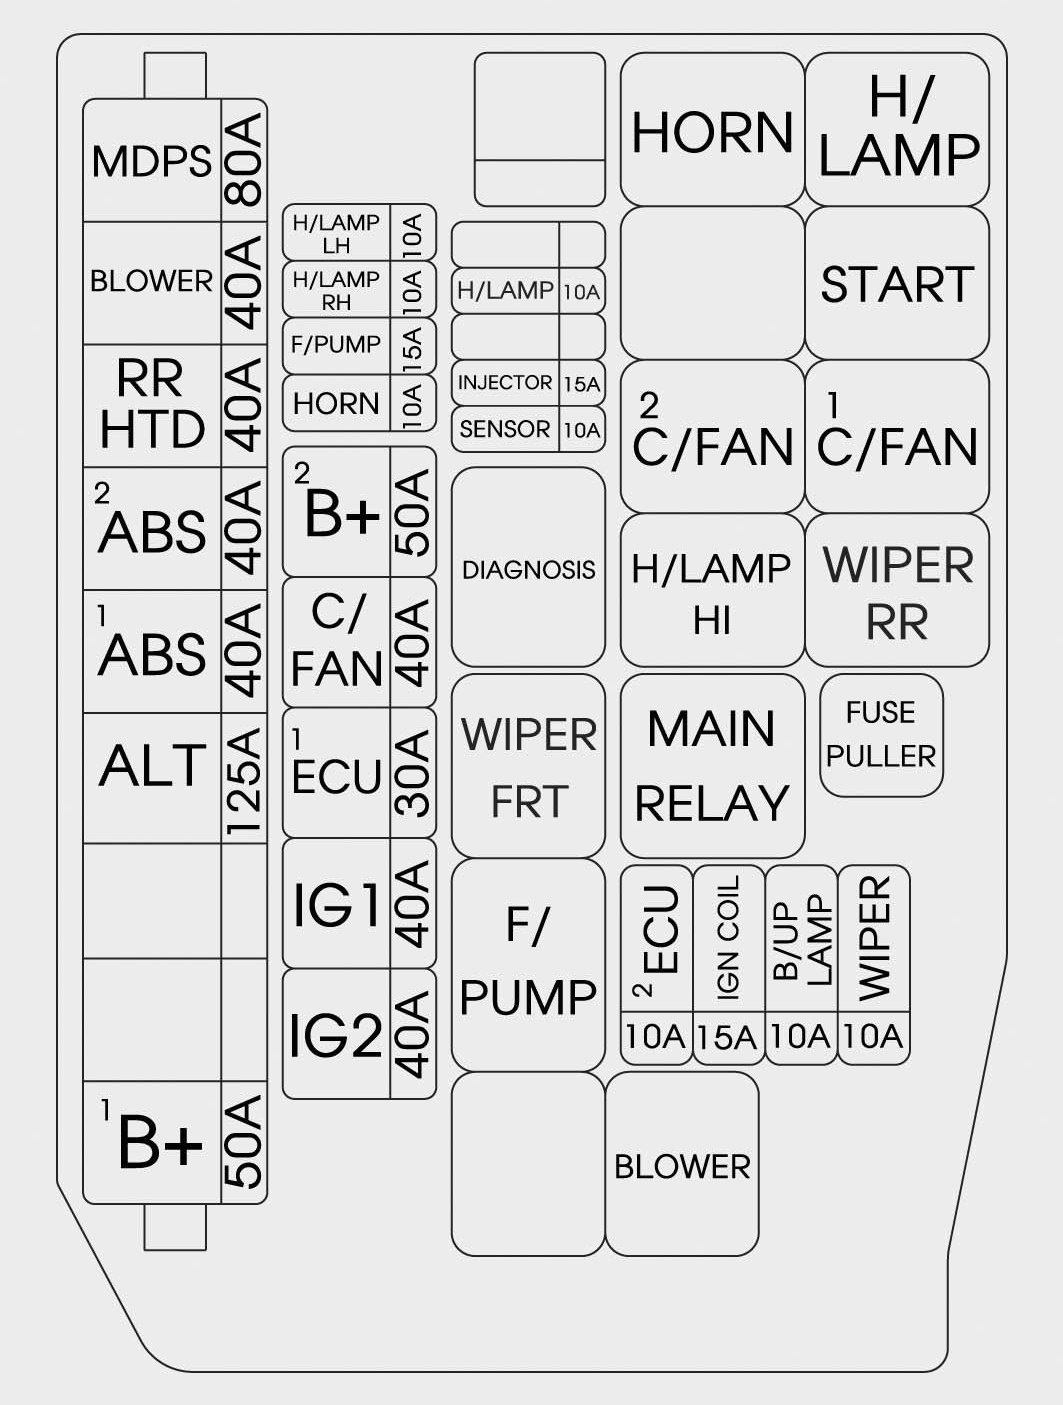 2015 Hyundai Sonata Fuse Box Everything About Wiring Diagram 2006 Ix35 Library Rh 66 Muehlwald De 2009